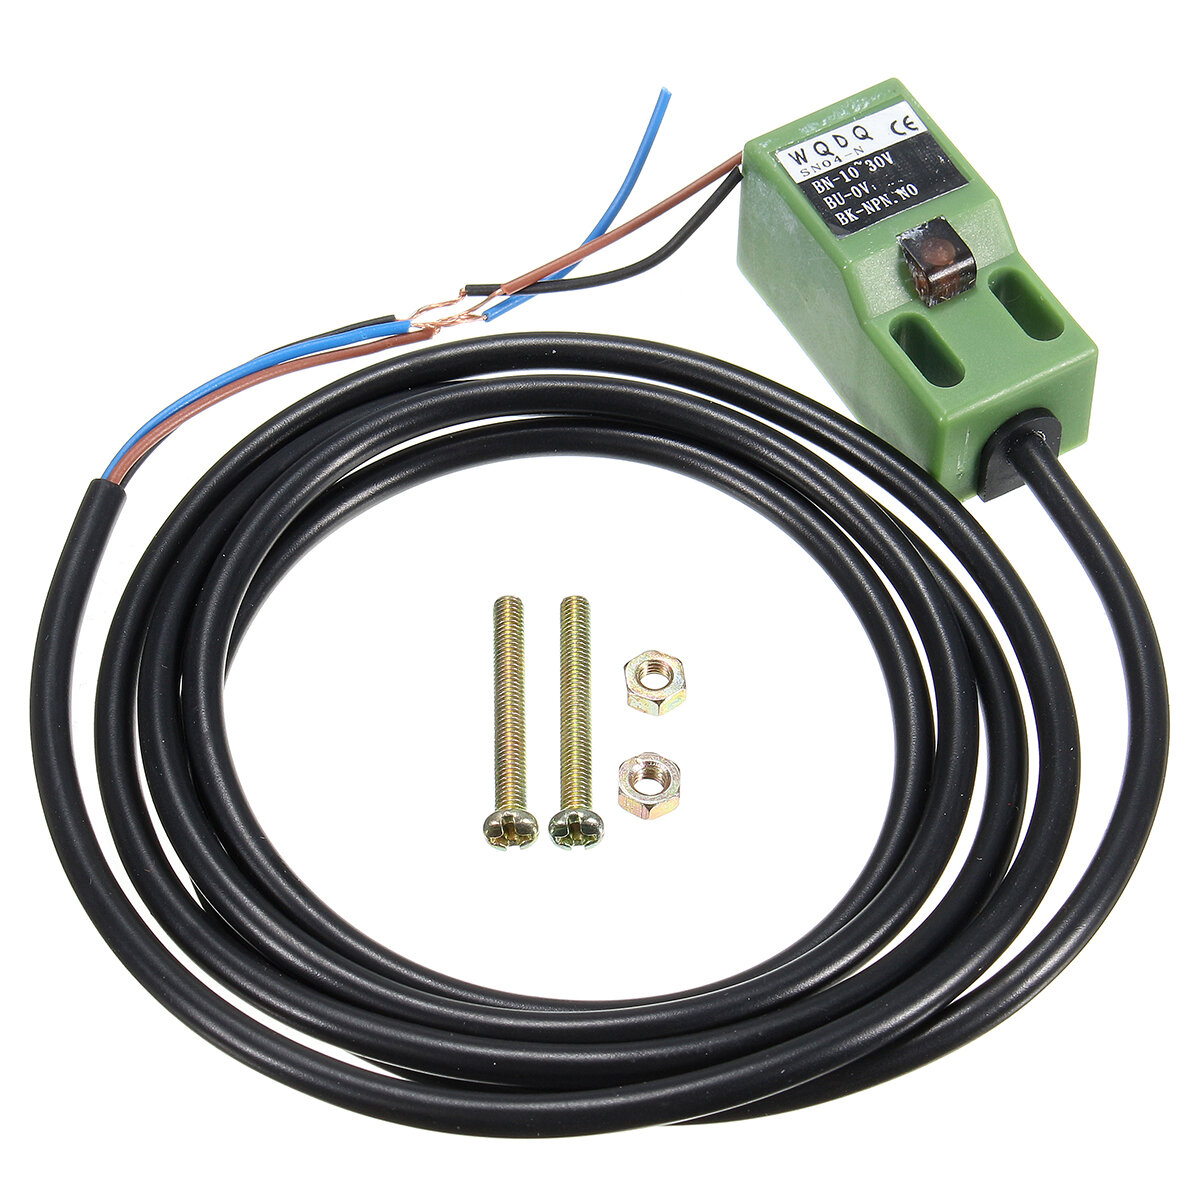 hight resolution of sn04 n 5mm inductive proximity sensor test switch approach npn no600x600 600x600 600x600